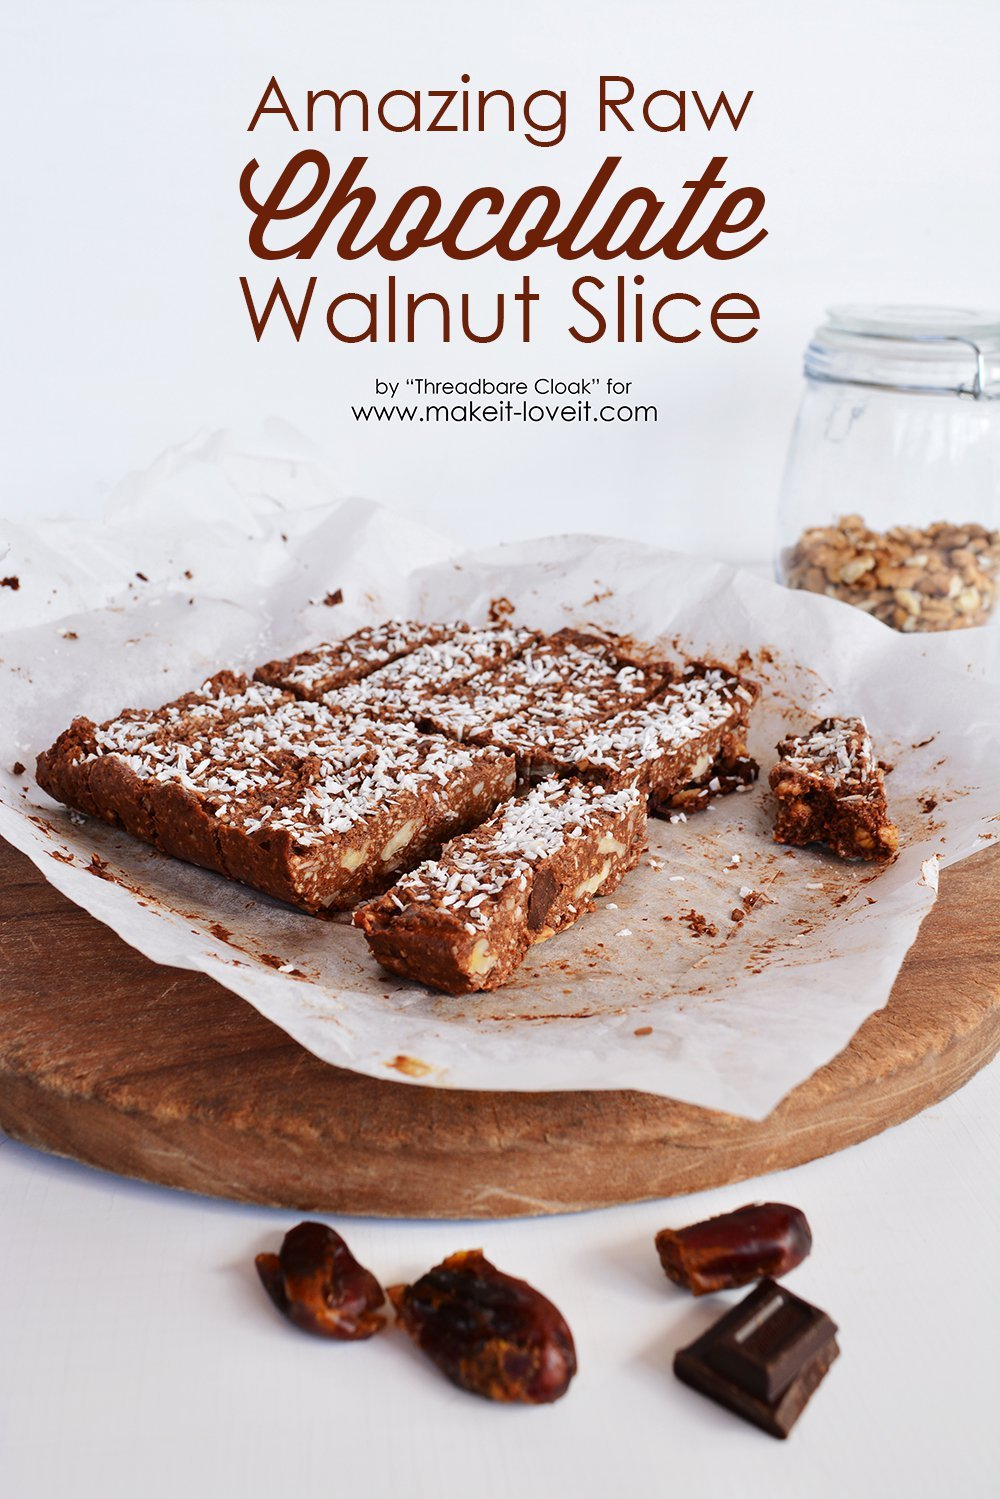 Raw chocolate walnut slice recipe